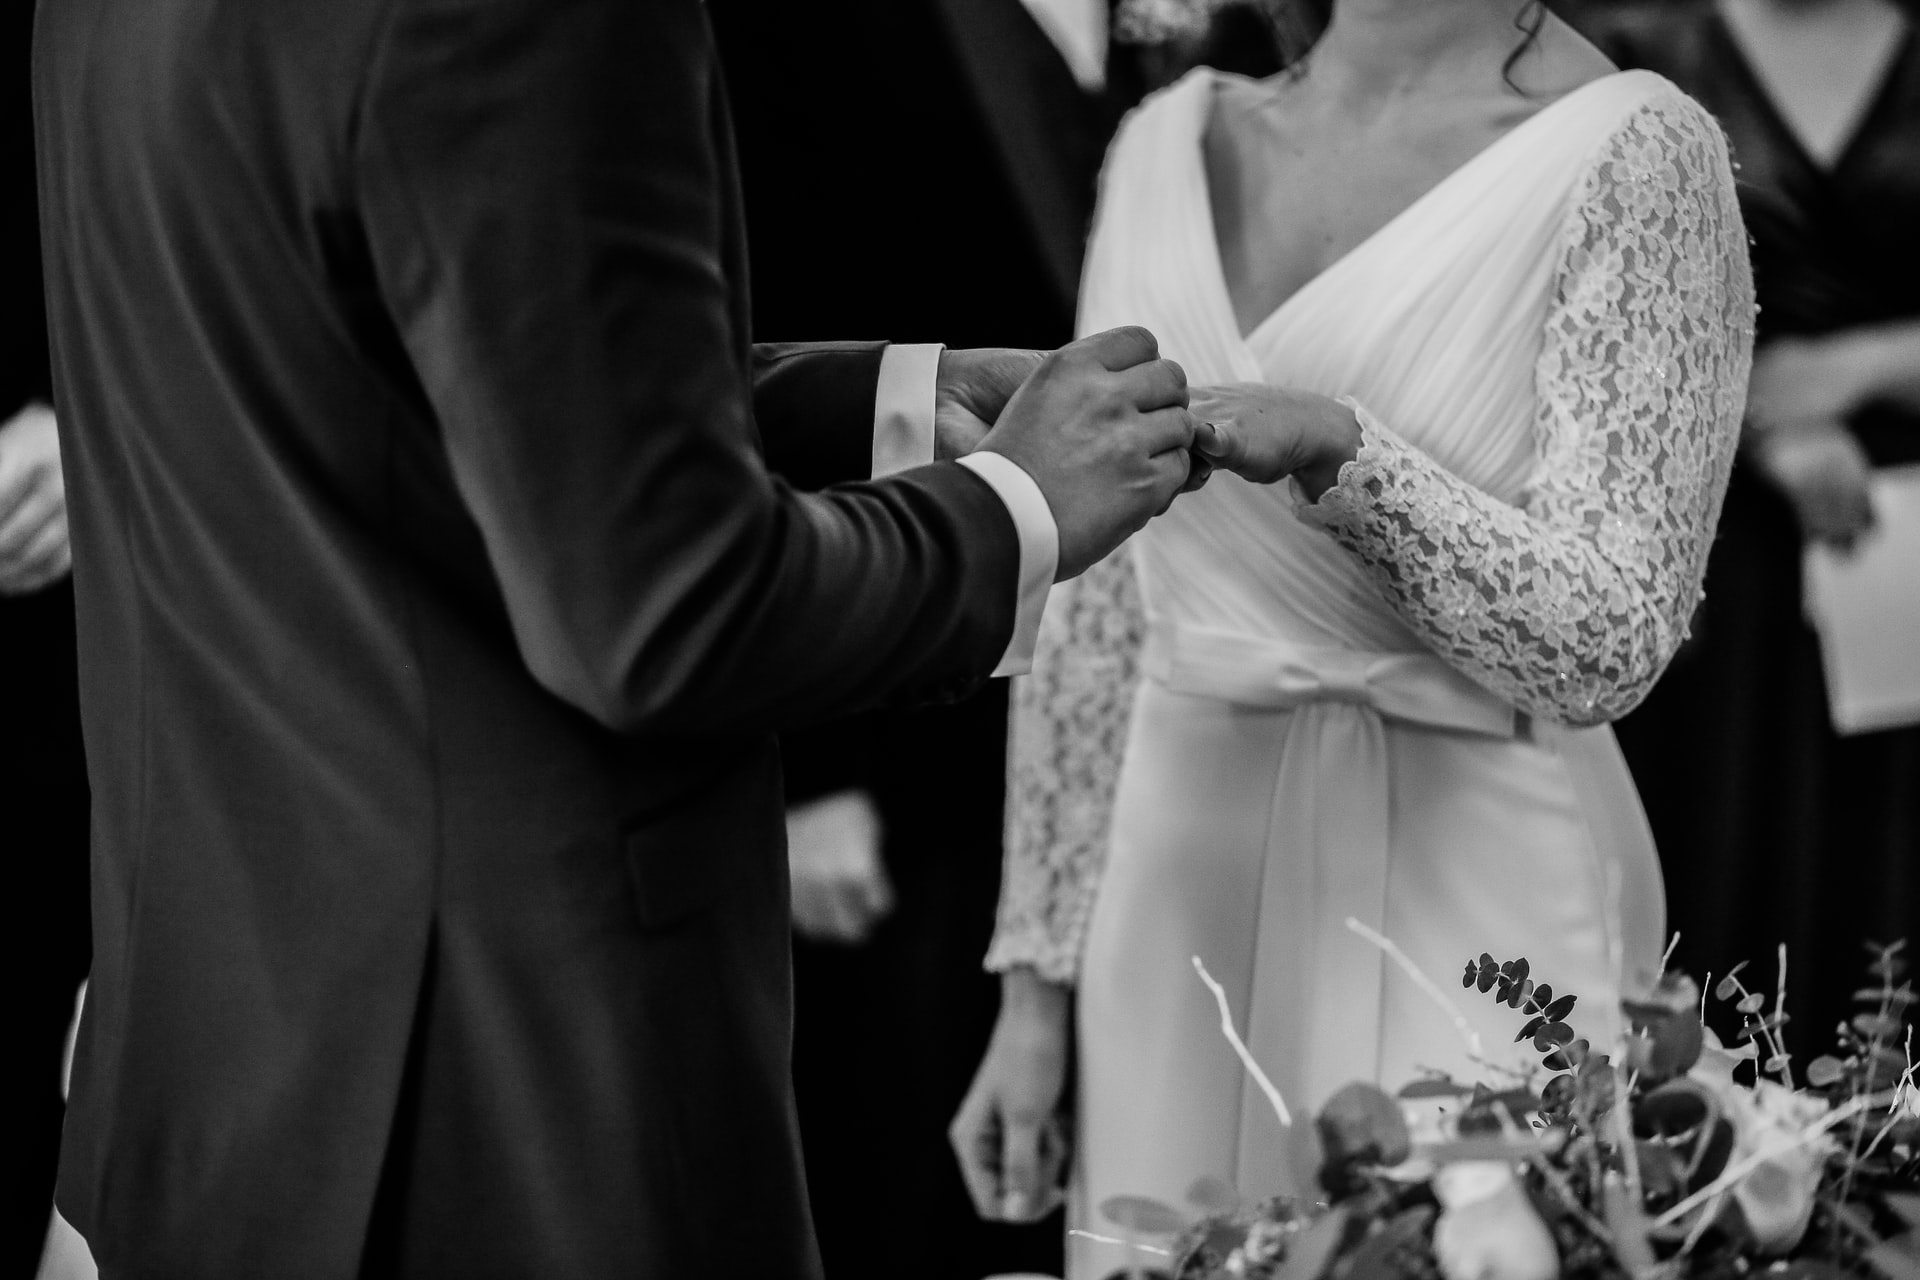 This is a black and white image of a groom and his bride as they hold hands during a marriage ceremony.